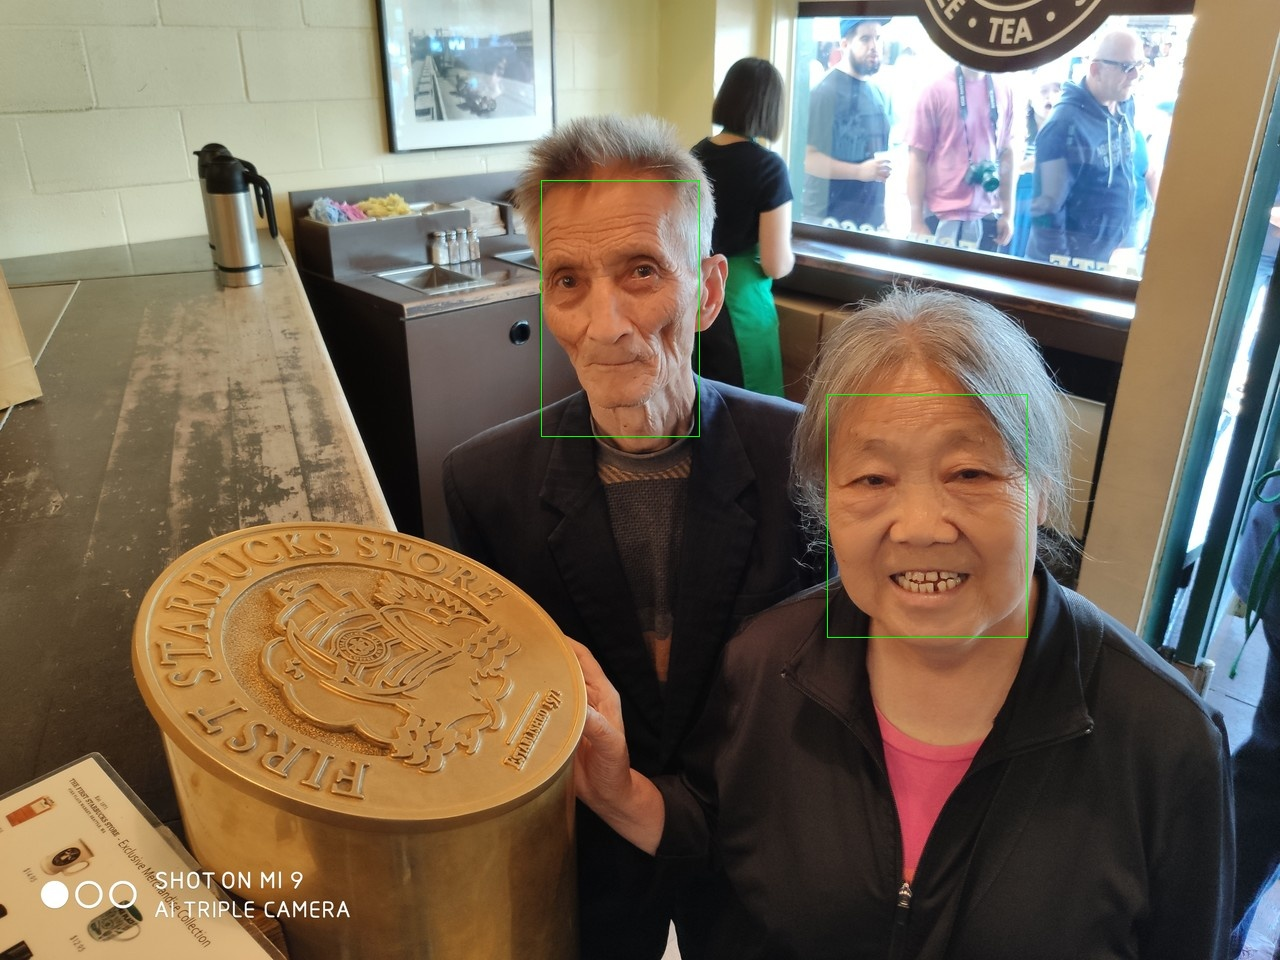 Parents At First Starbucks - Face Detection By NCS 1